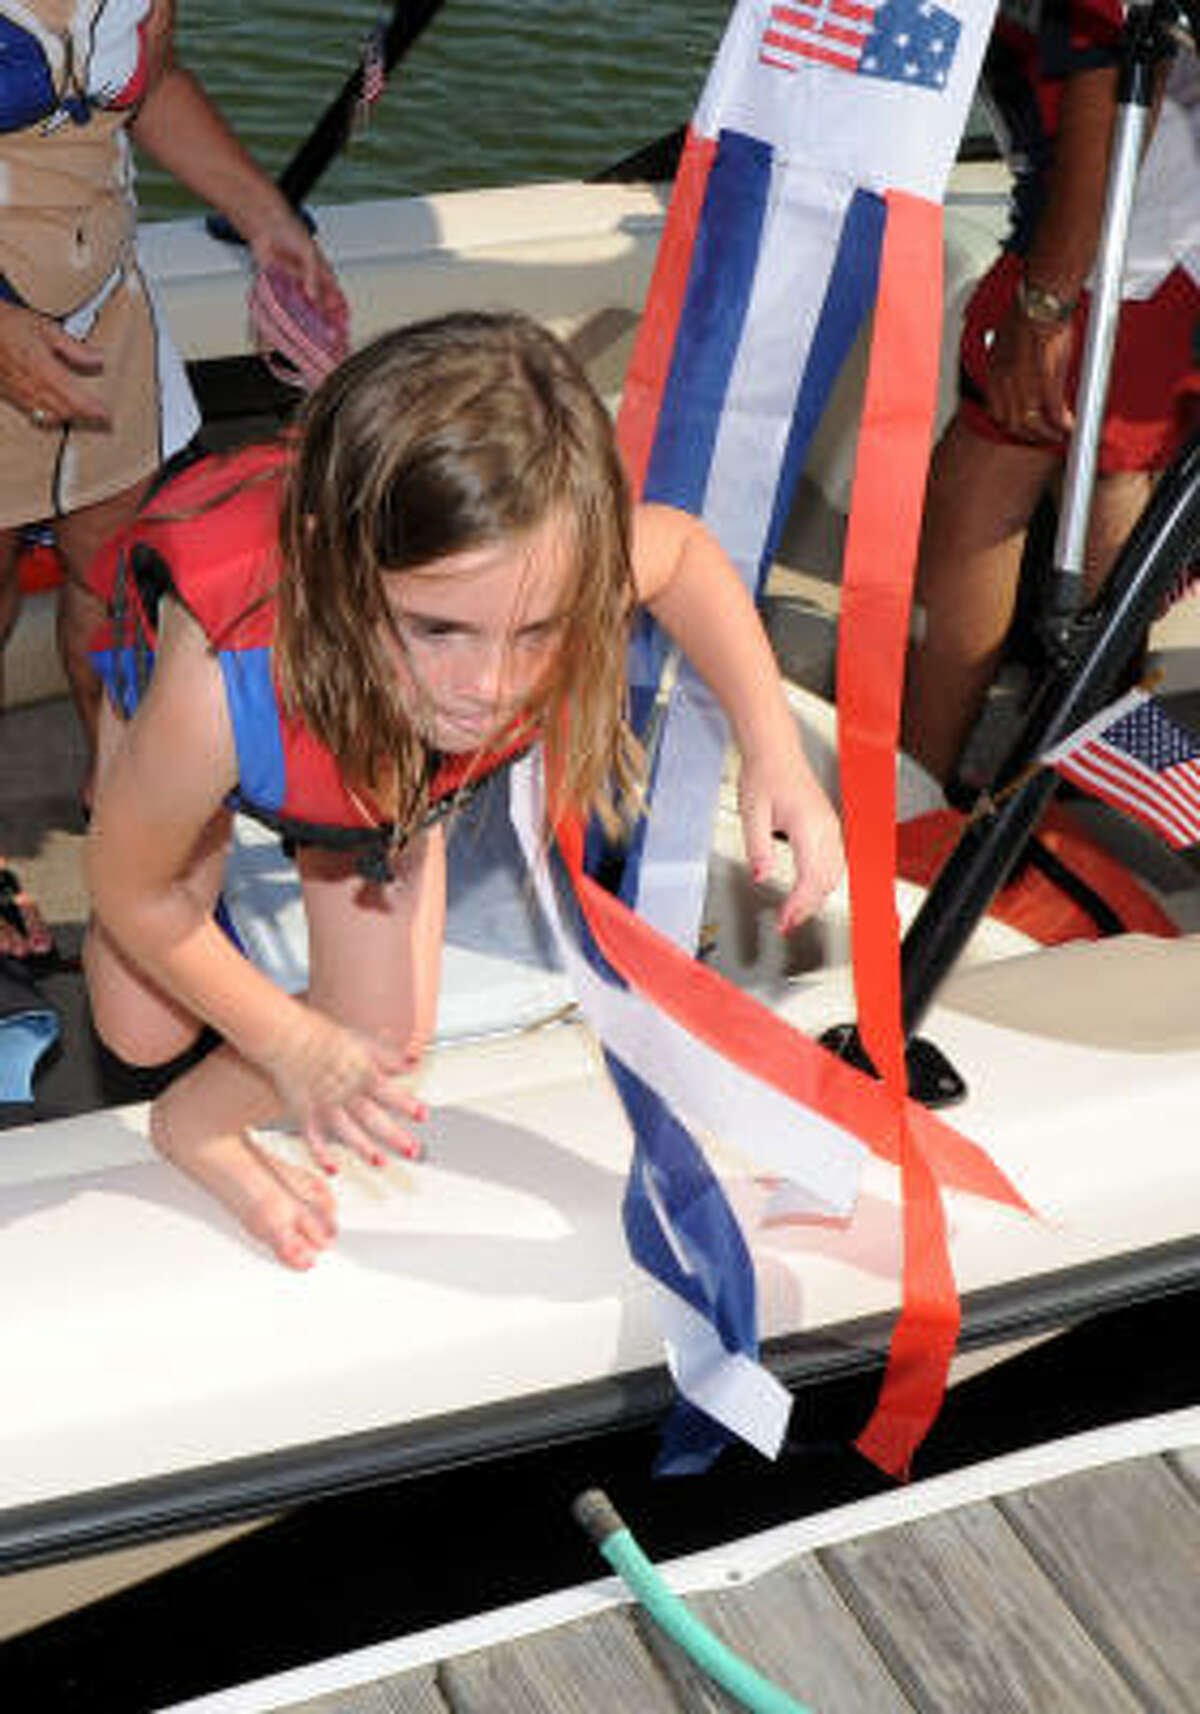 Cadence Tilton, 6, jumps out of the boat after the parade.